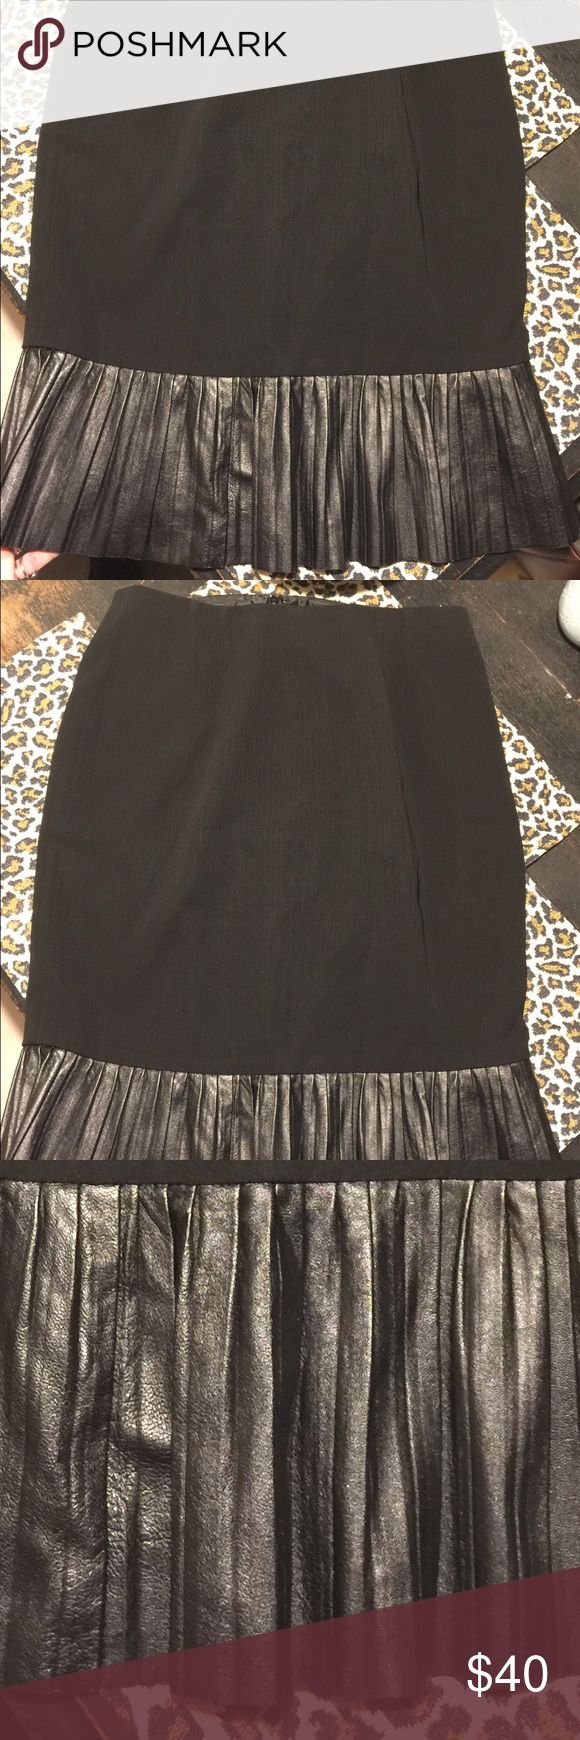 Oscar de la Renta skirt with pleated leather trim Size 12 lined pencil skirt made of an acetate poly blend with a leather pleated trim at the bottom. Zipper up in back w eyelet hook. This skirt is baaaad. Oscar de la Renta Skirts Pencil